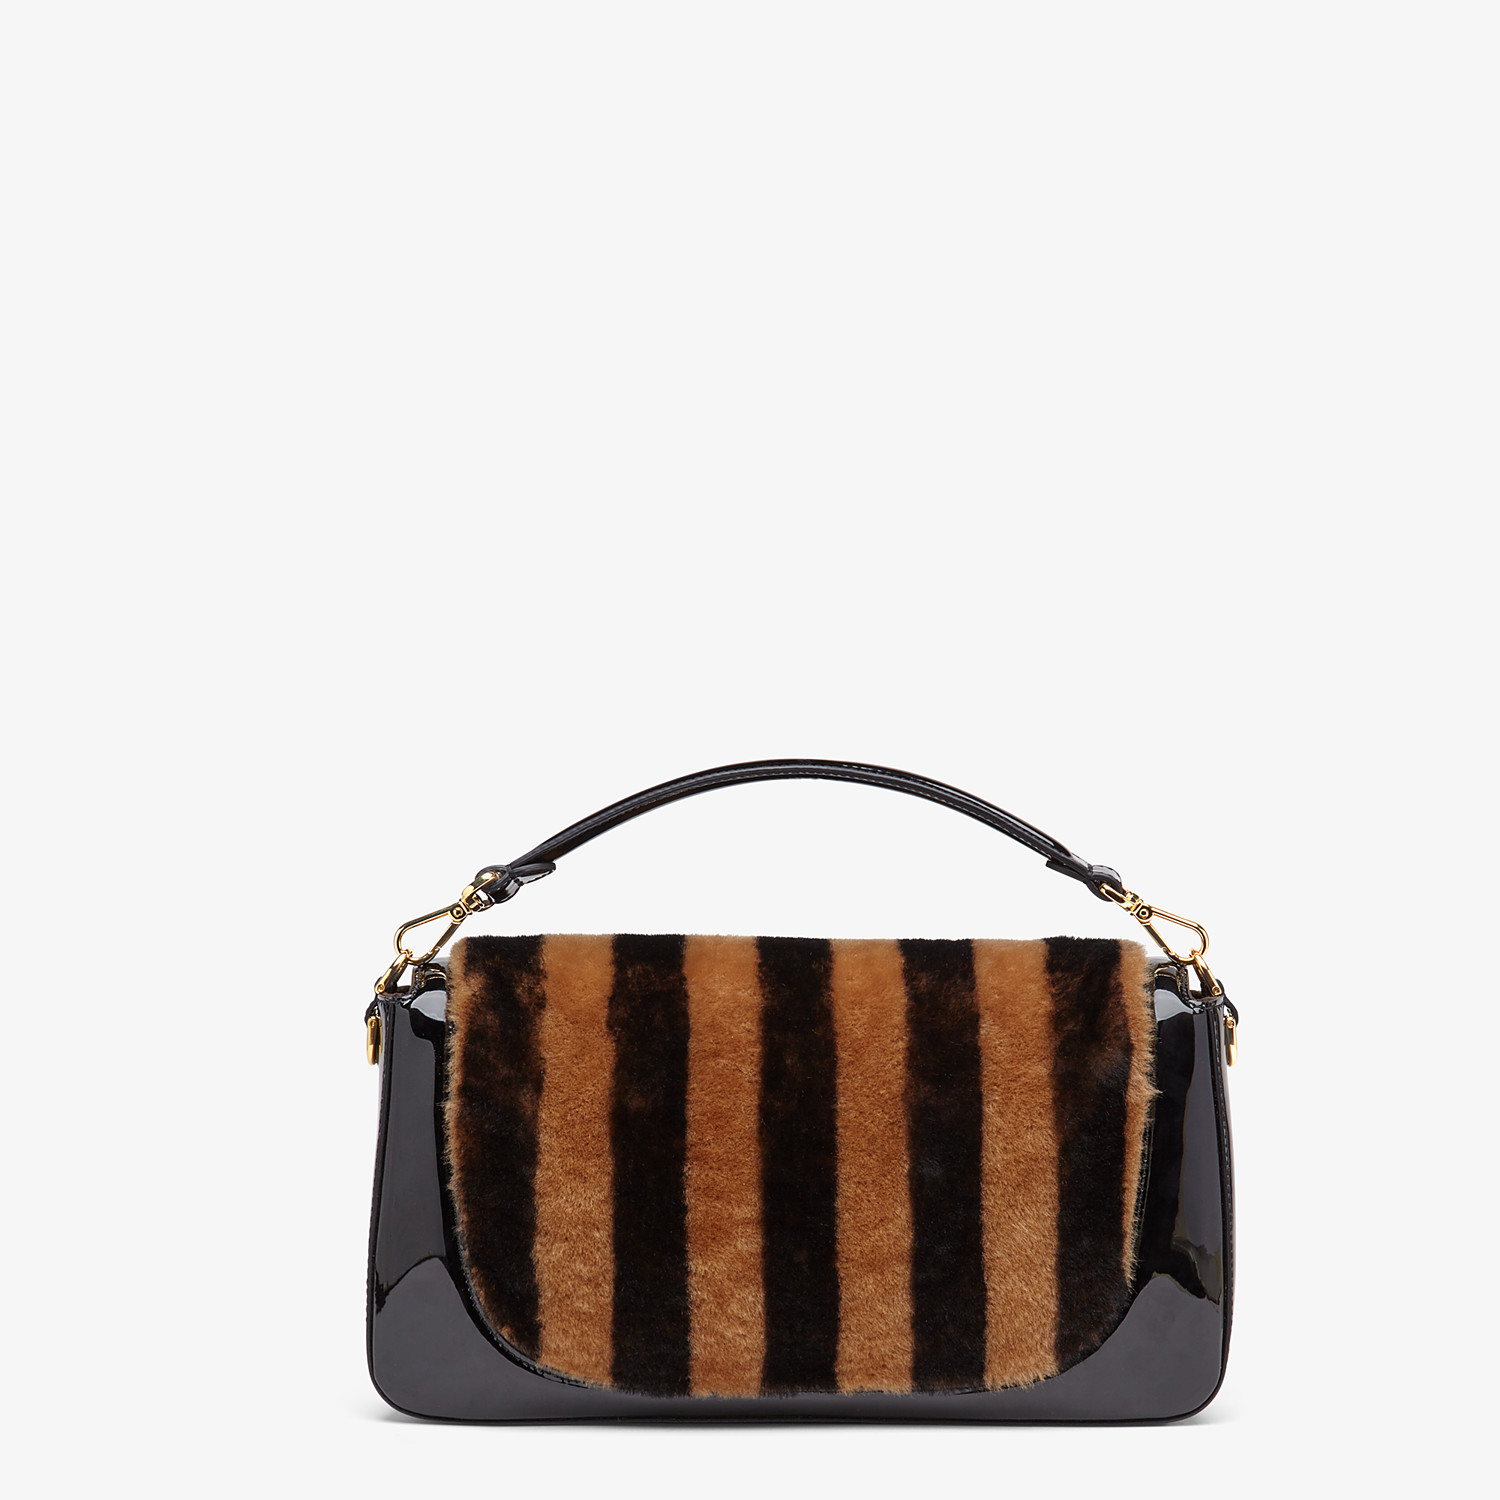 FENDI BAGUETTE LARGE - Multicolour, patent leather and sheepskin bag - view 4 detail